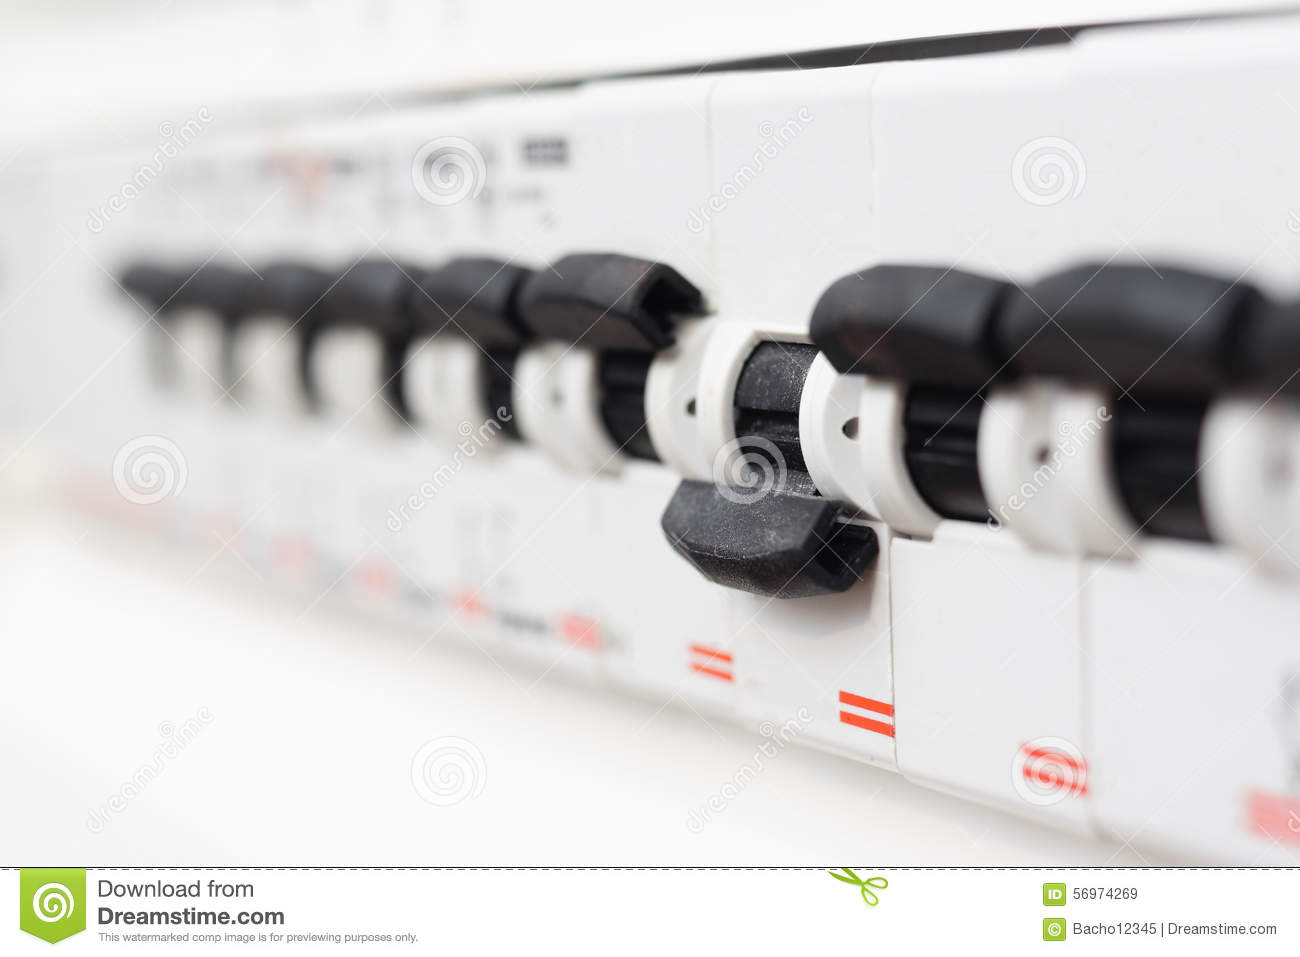 Fuse Box Switched Off : Switched off fuse in electrical box stock photo image